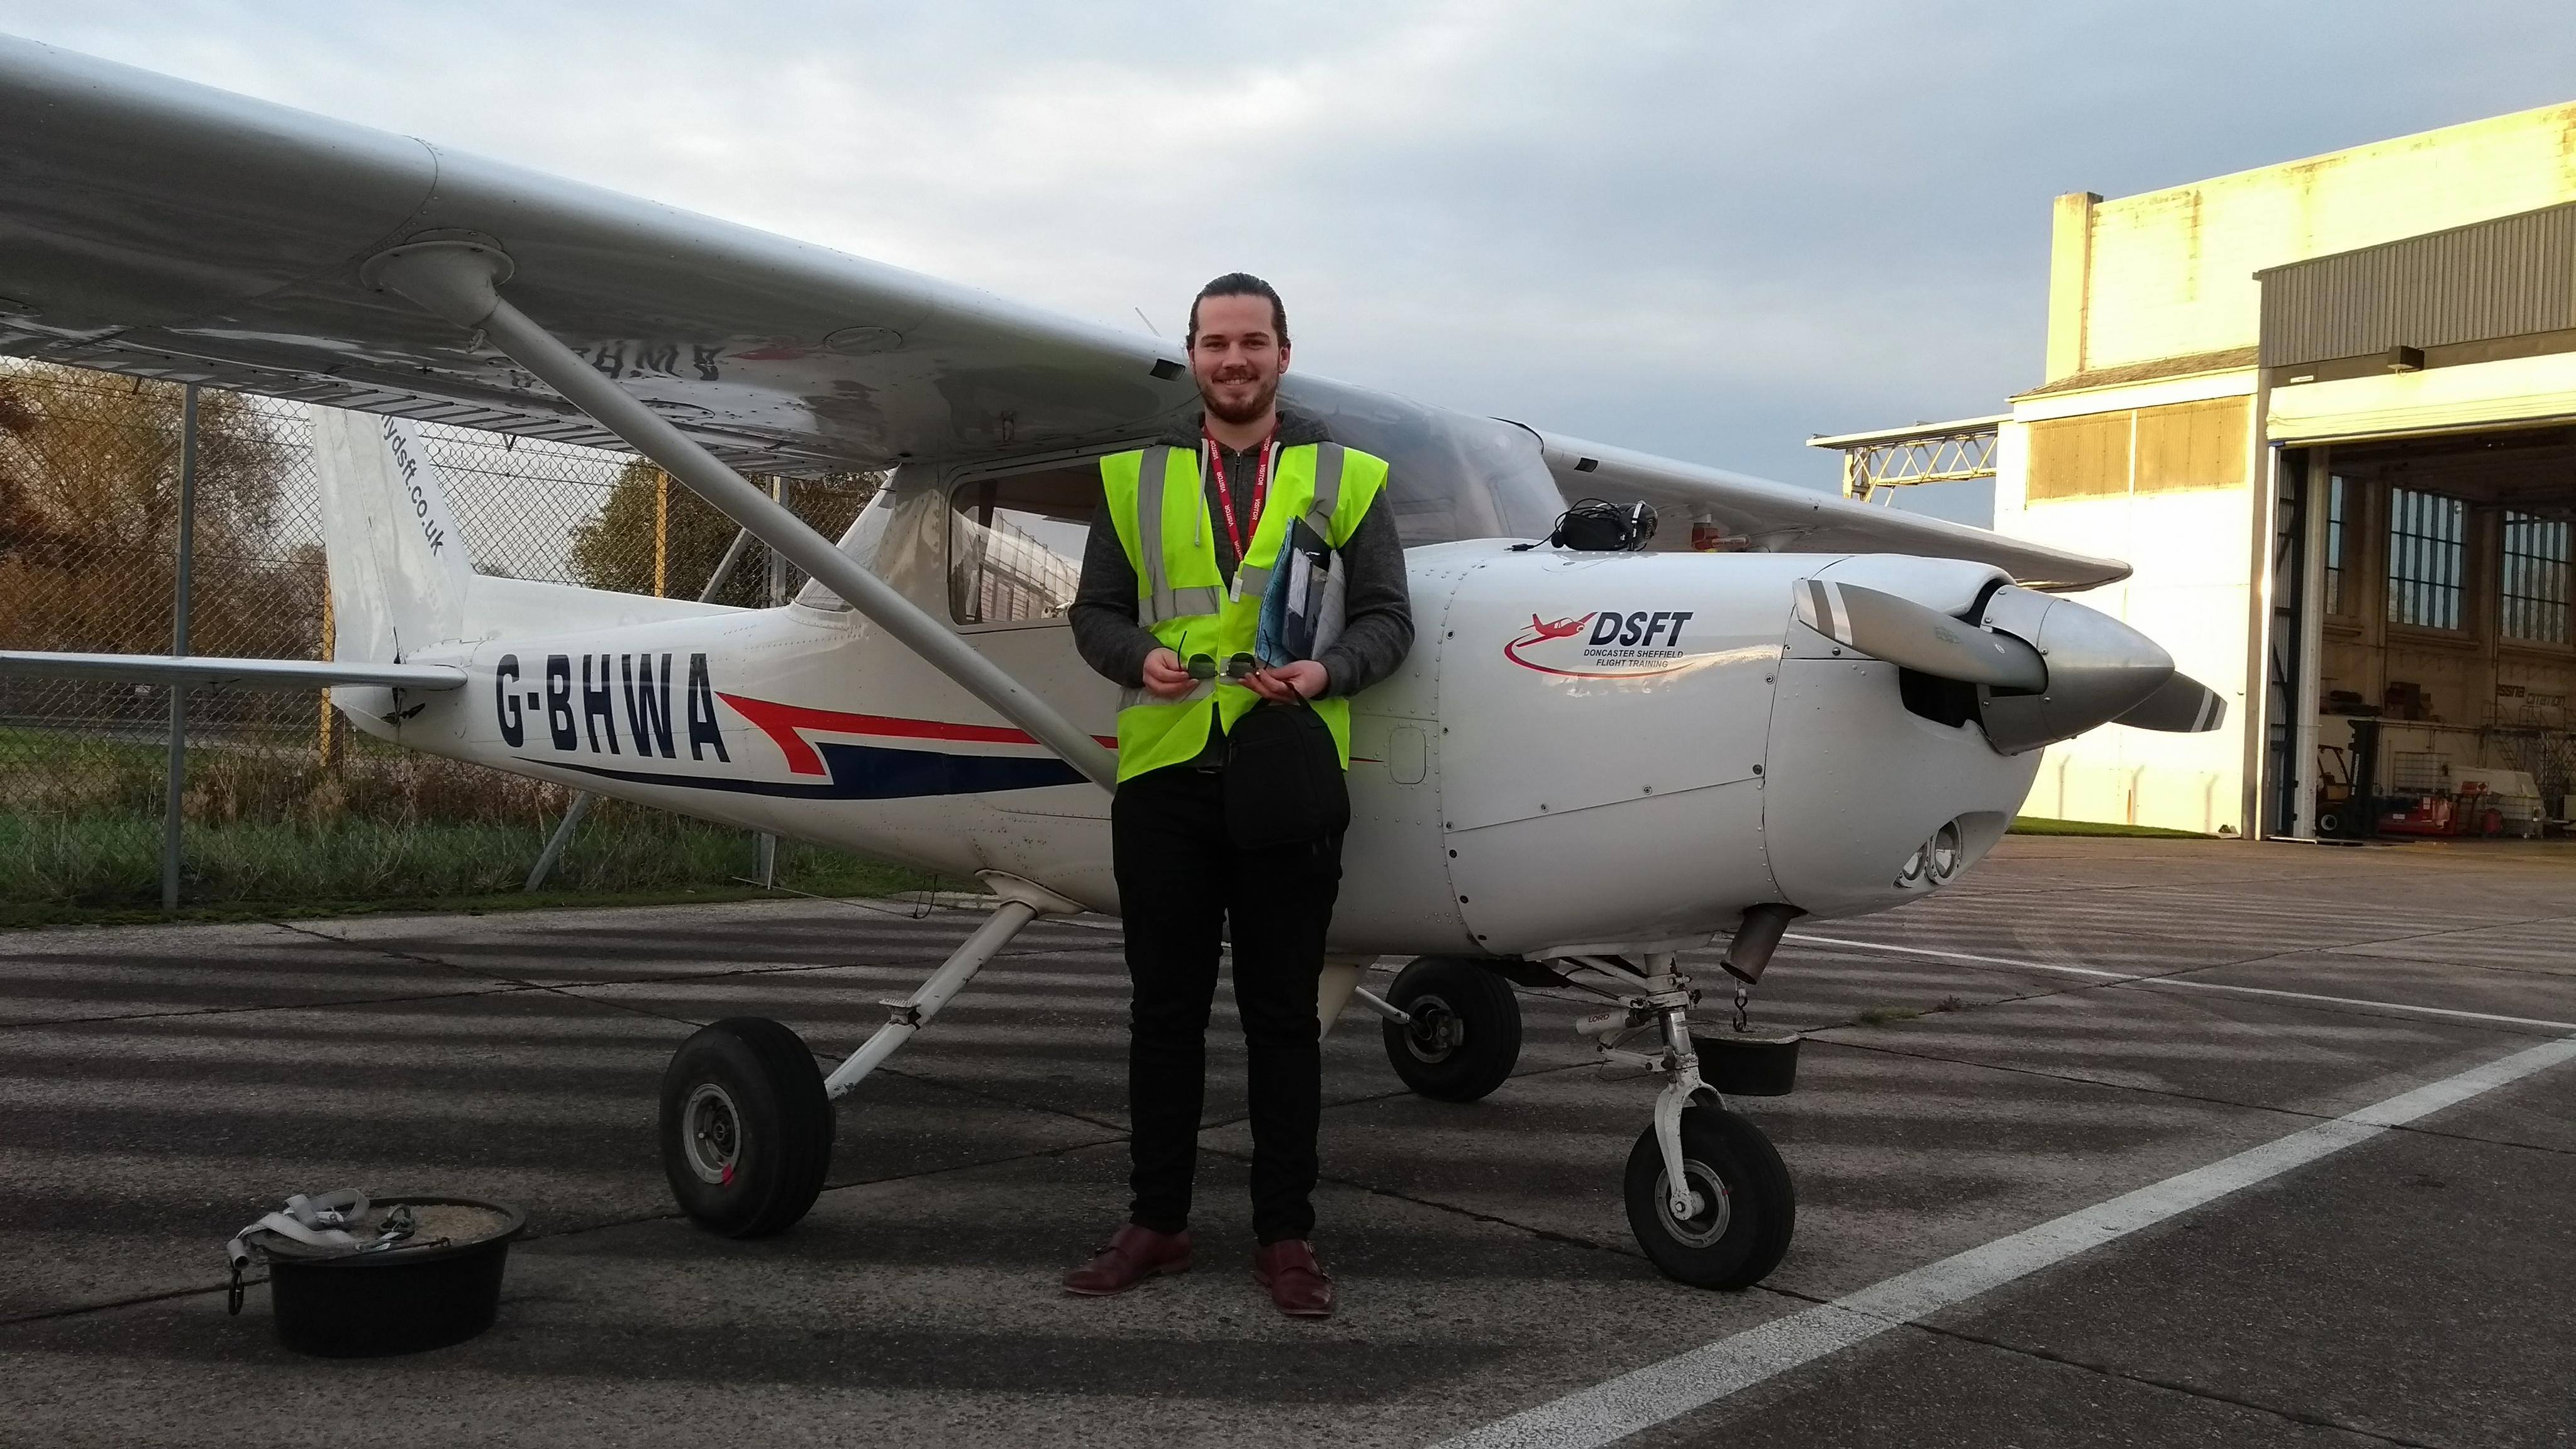 Doncaster Flying School